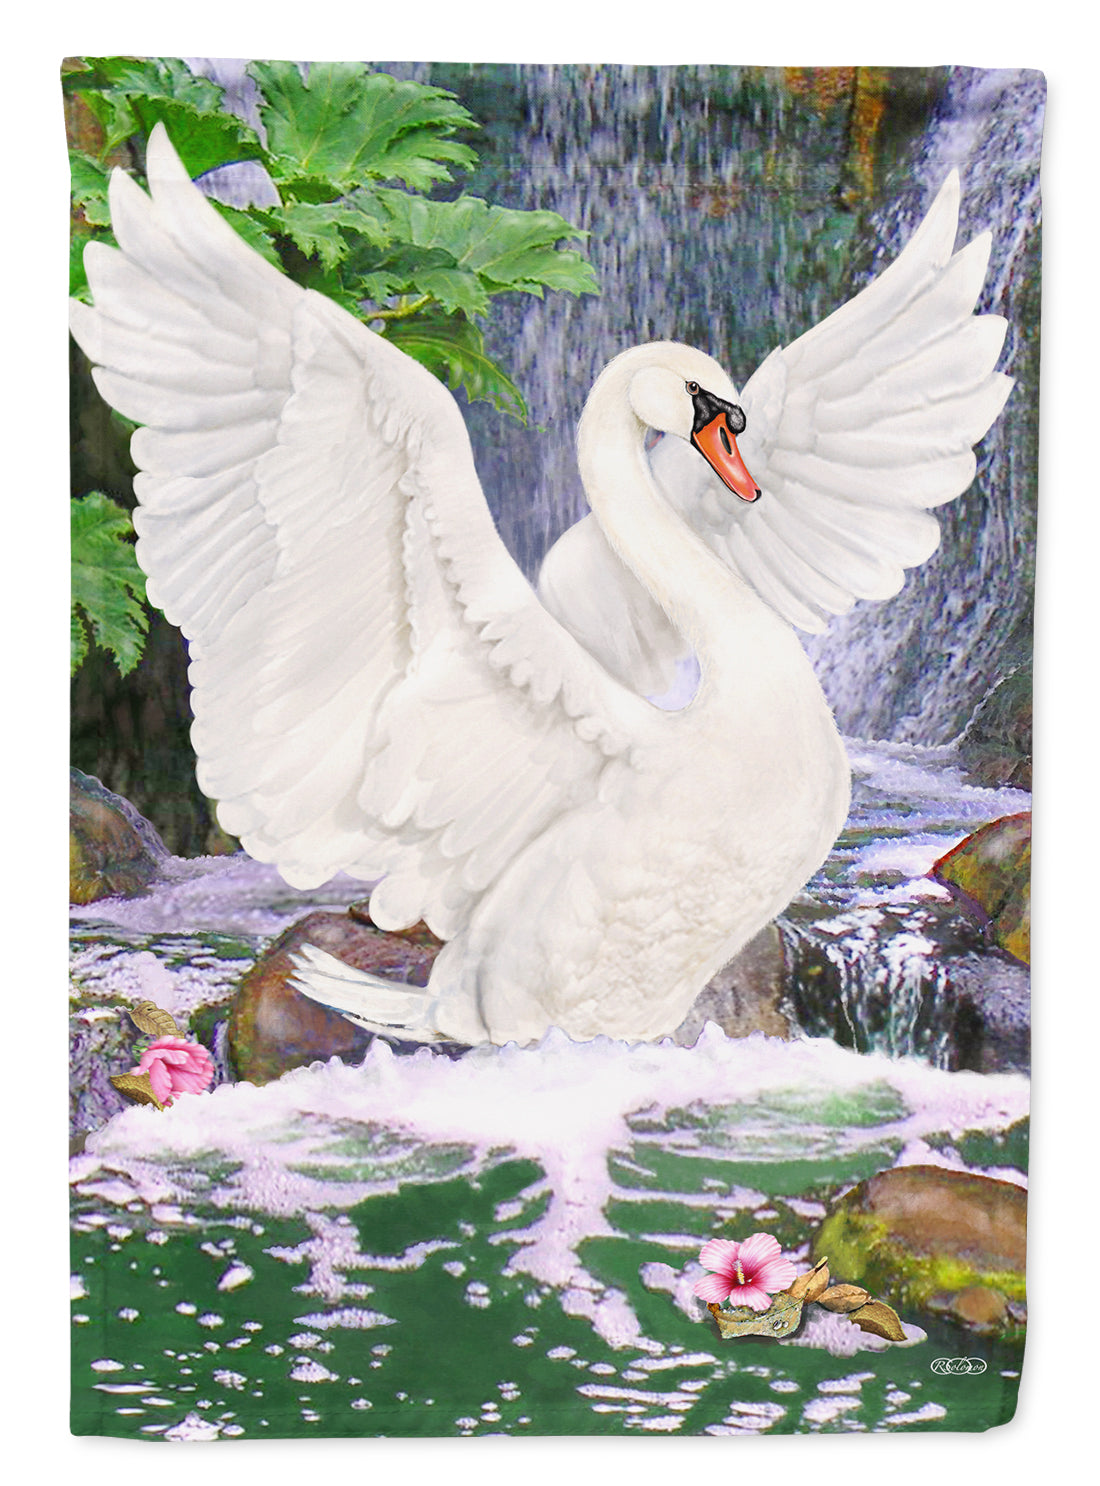 Swan Bathing at Waterfall Flag Canvas House Size PRS4001CHF by Caroline's Treasures